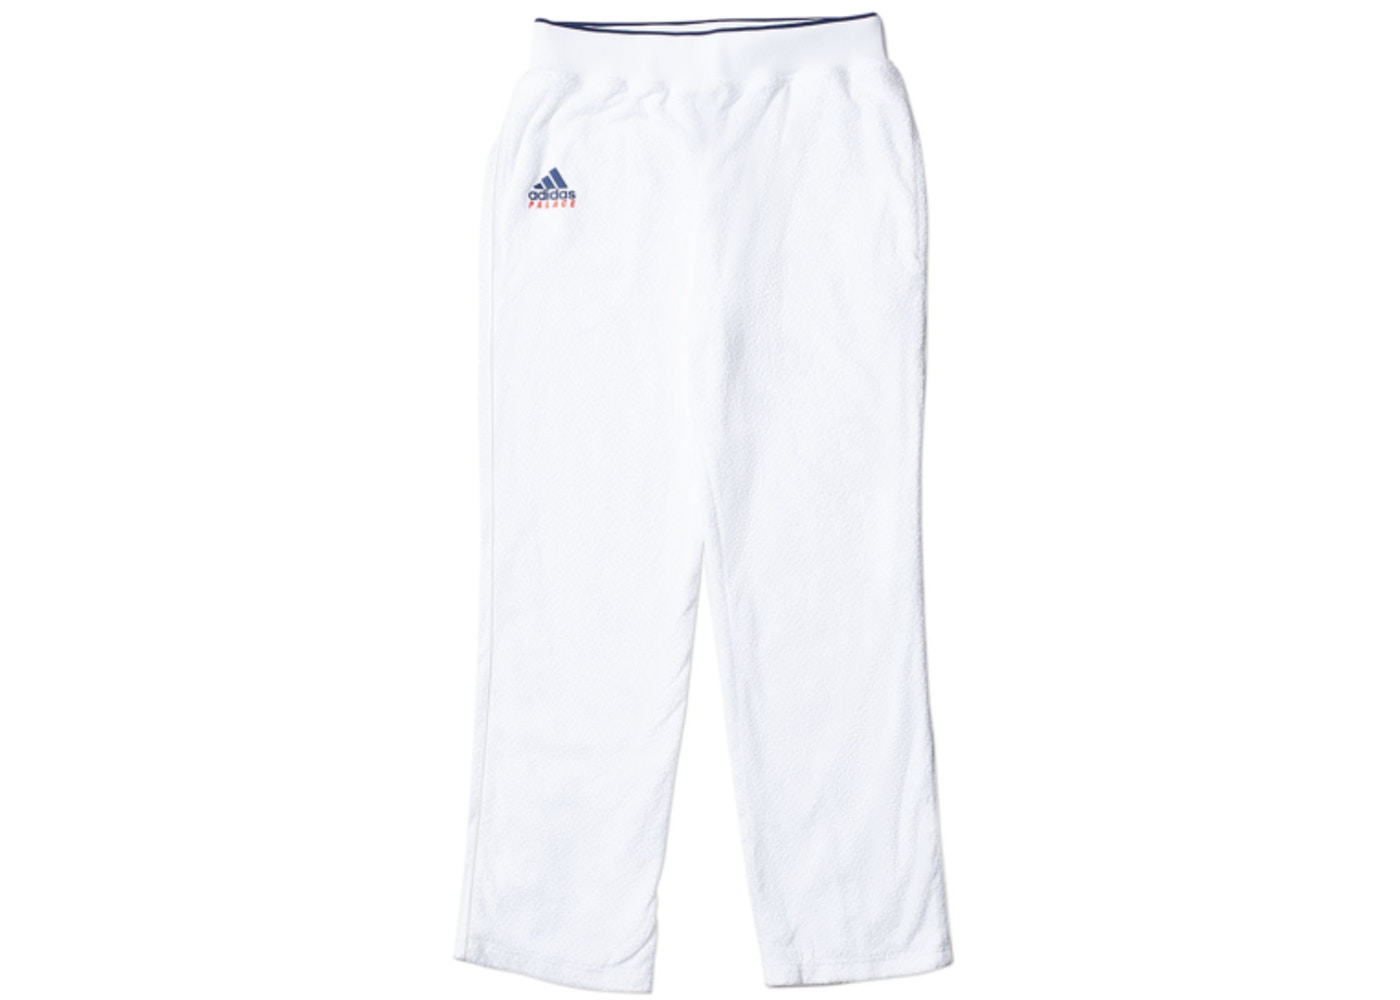 93ff6210 Palace adidas Ladies On Court Towel Track Pant White - SS18